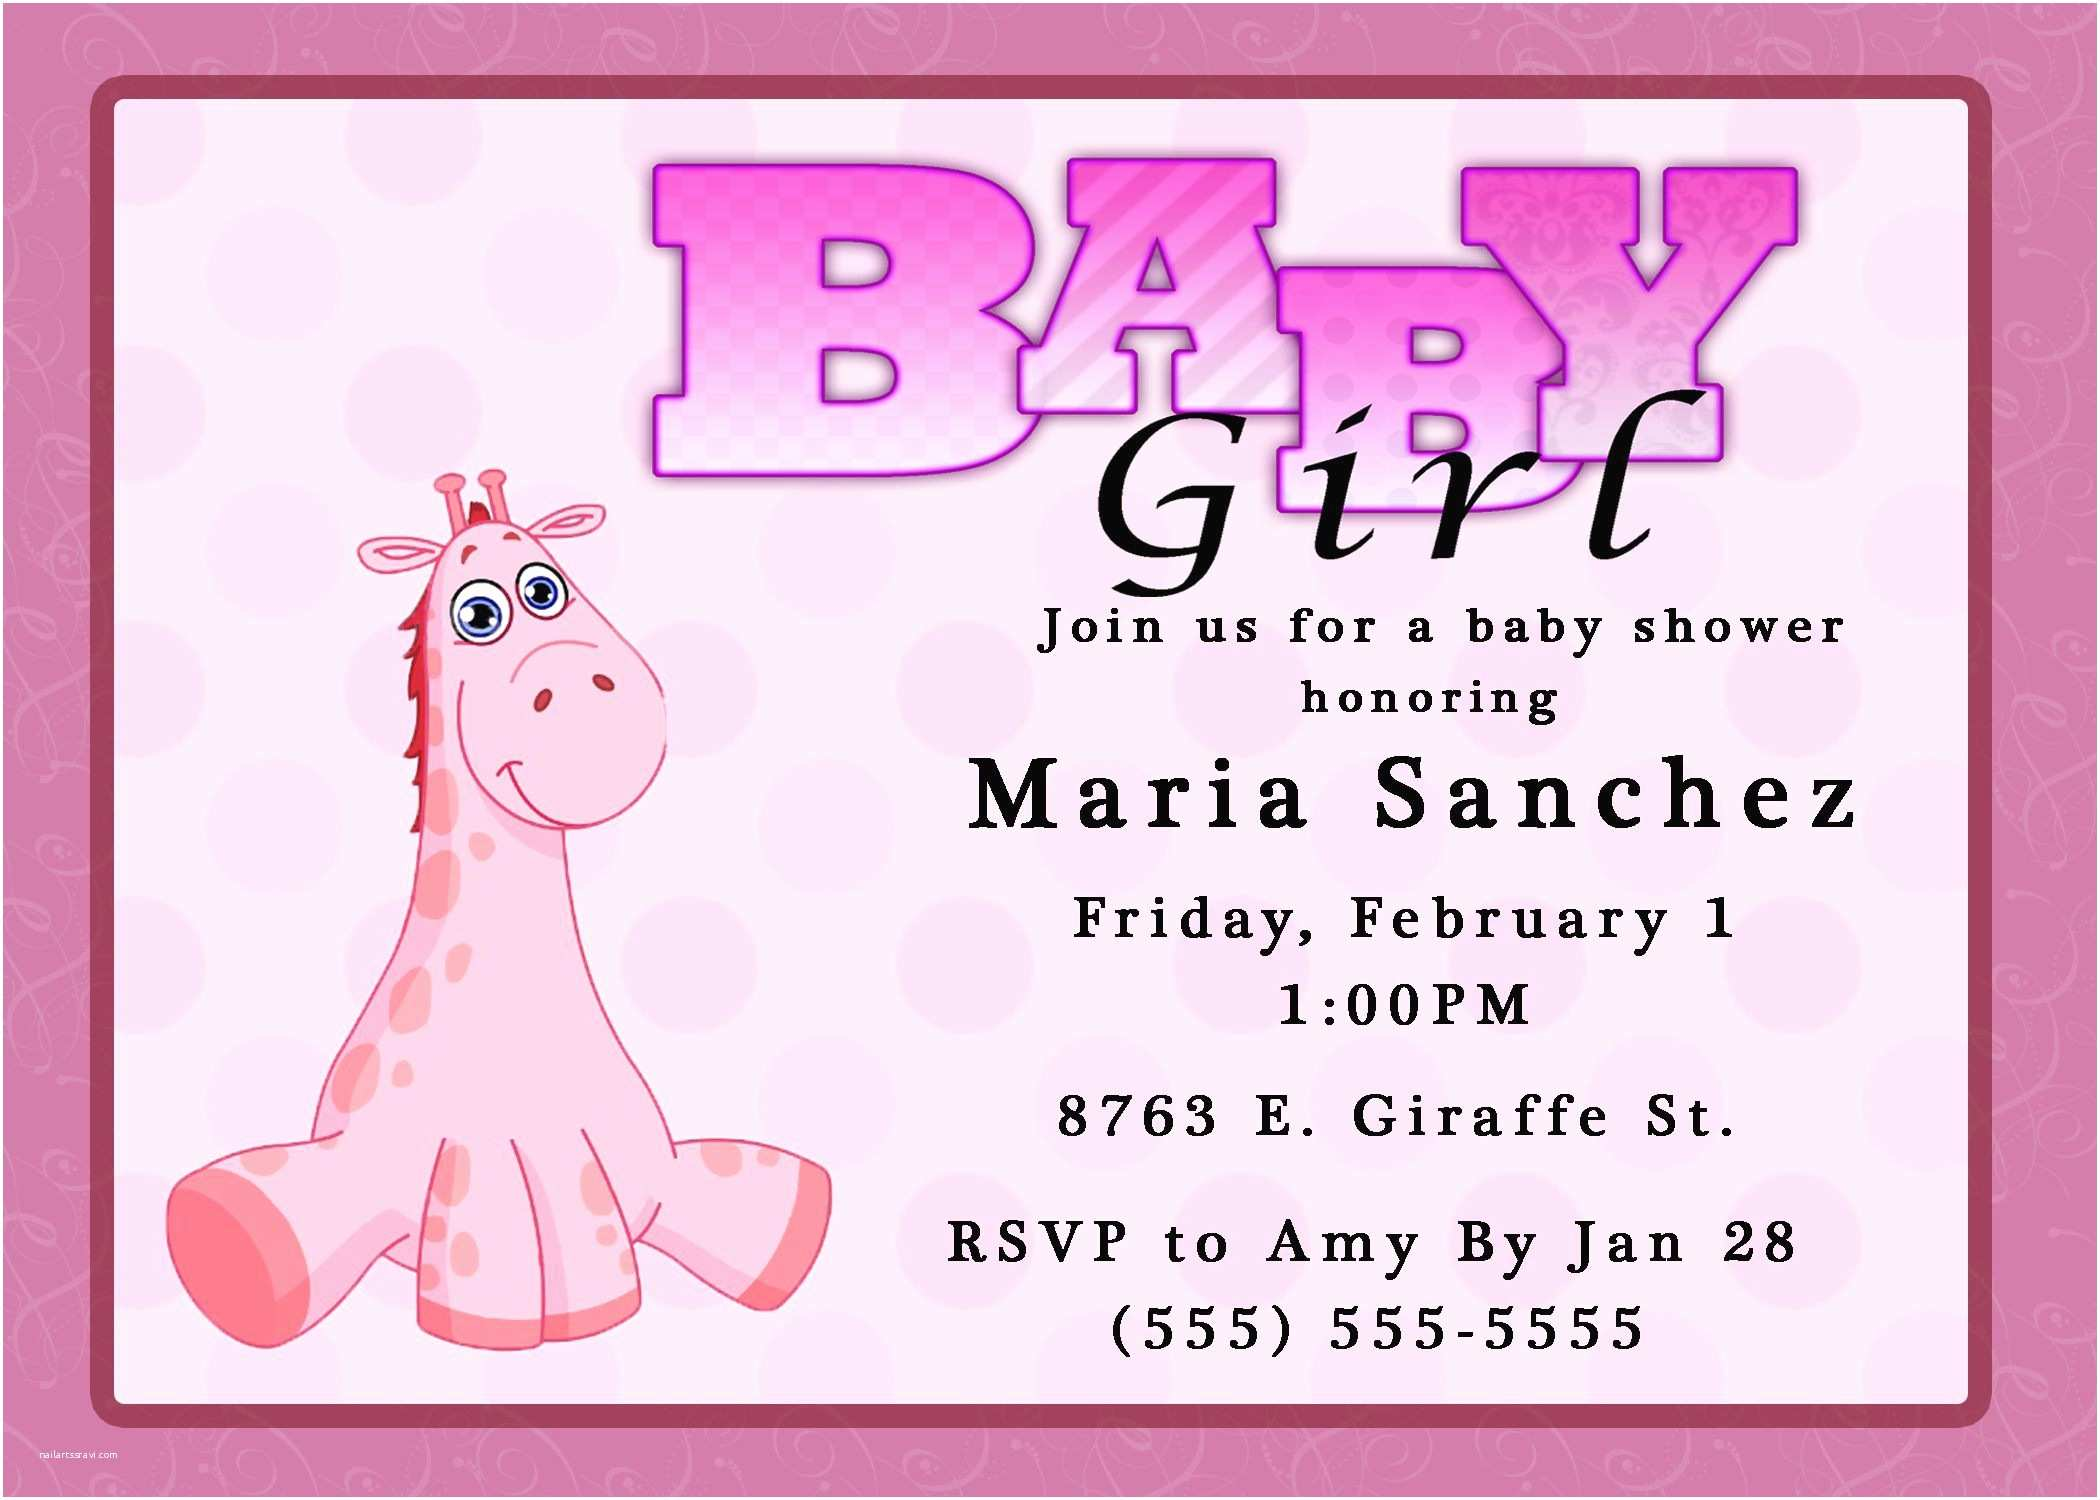 Party City Invitations for Baby Shower Party City Invitations for Baby Shower Various